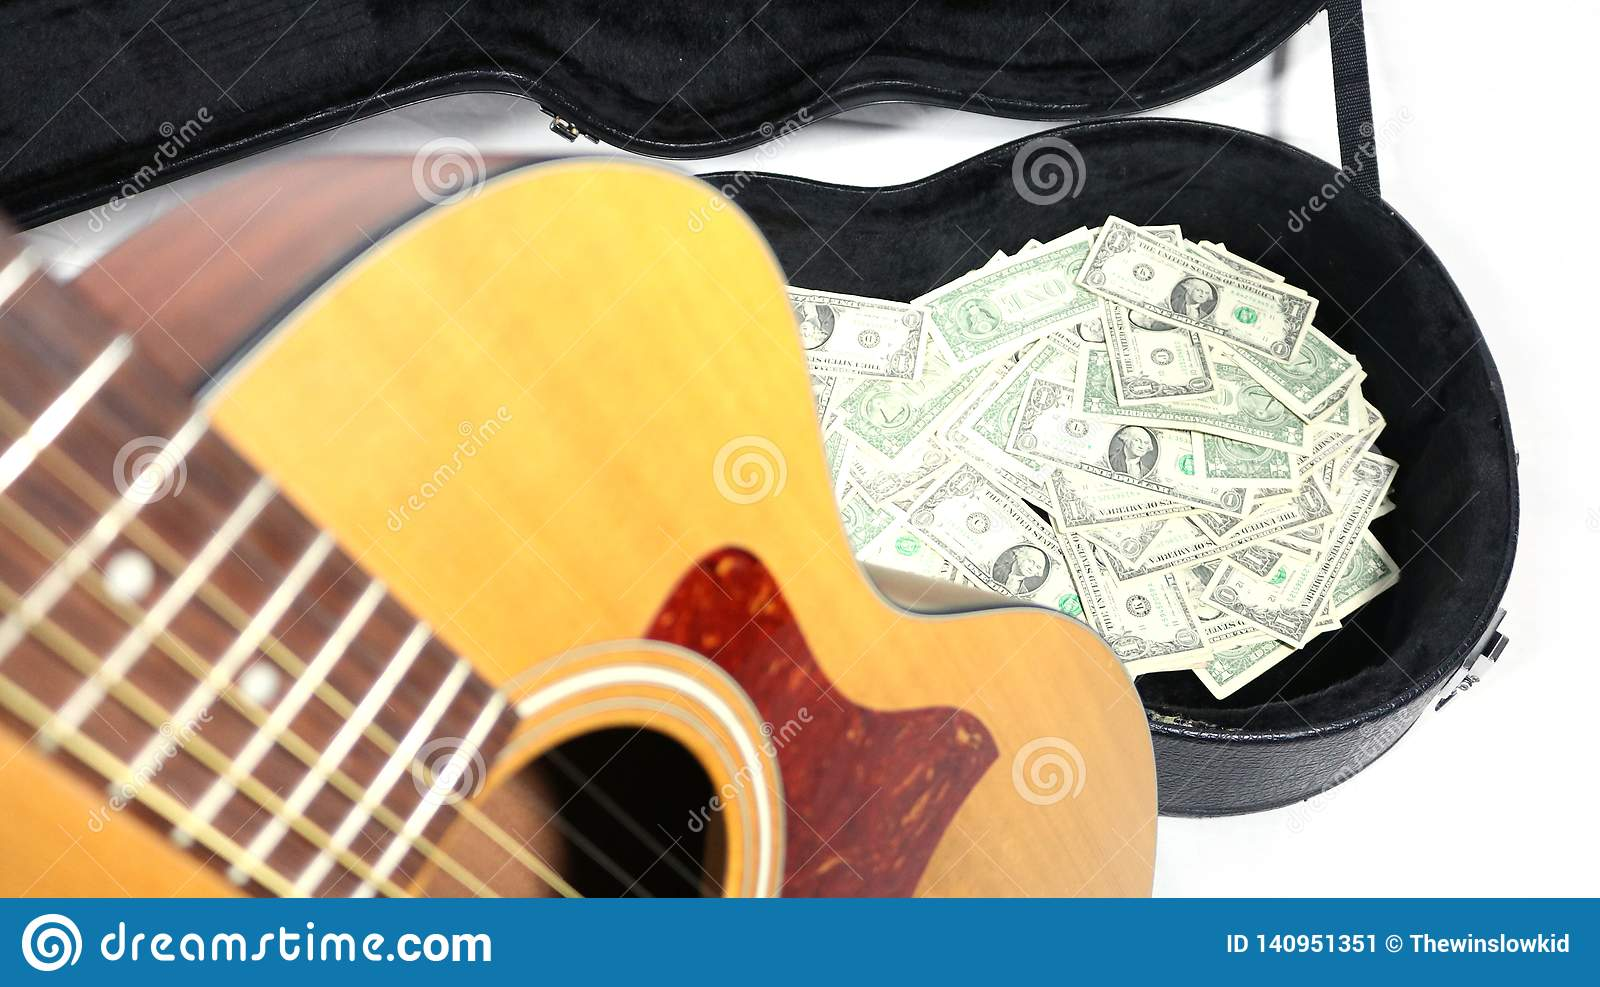 b6cbecde4e0 Making money with music. Partial acoustic guitar, guitar case filled with  money, acoustic guitar up close and out of focus, money in case in the  distance, ...